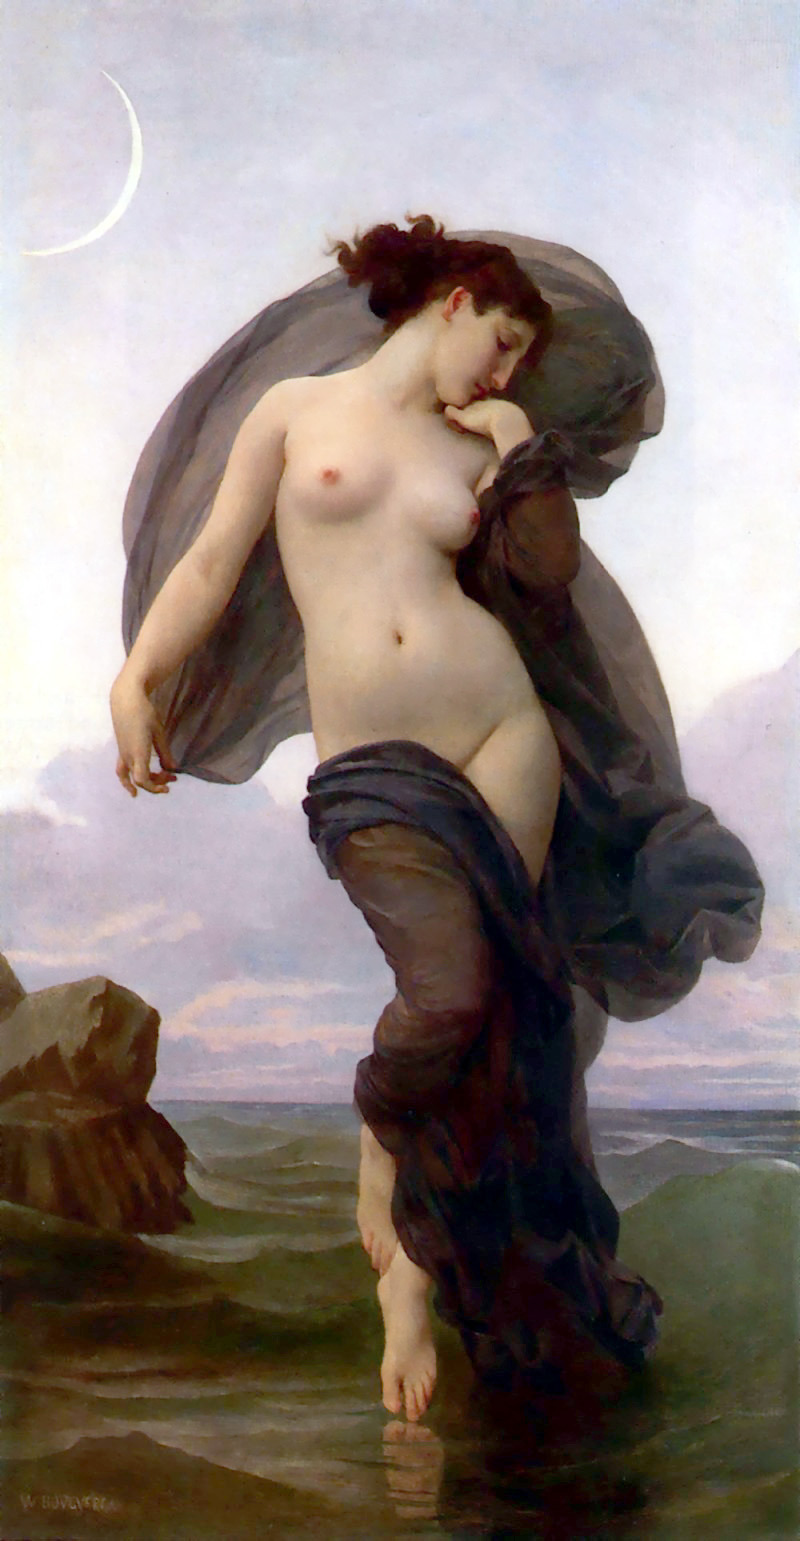 Evening Mood (1882) by the french painter : William Bouguereau (1825-1905).